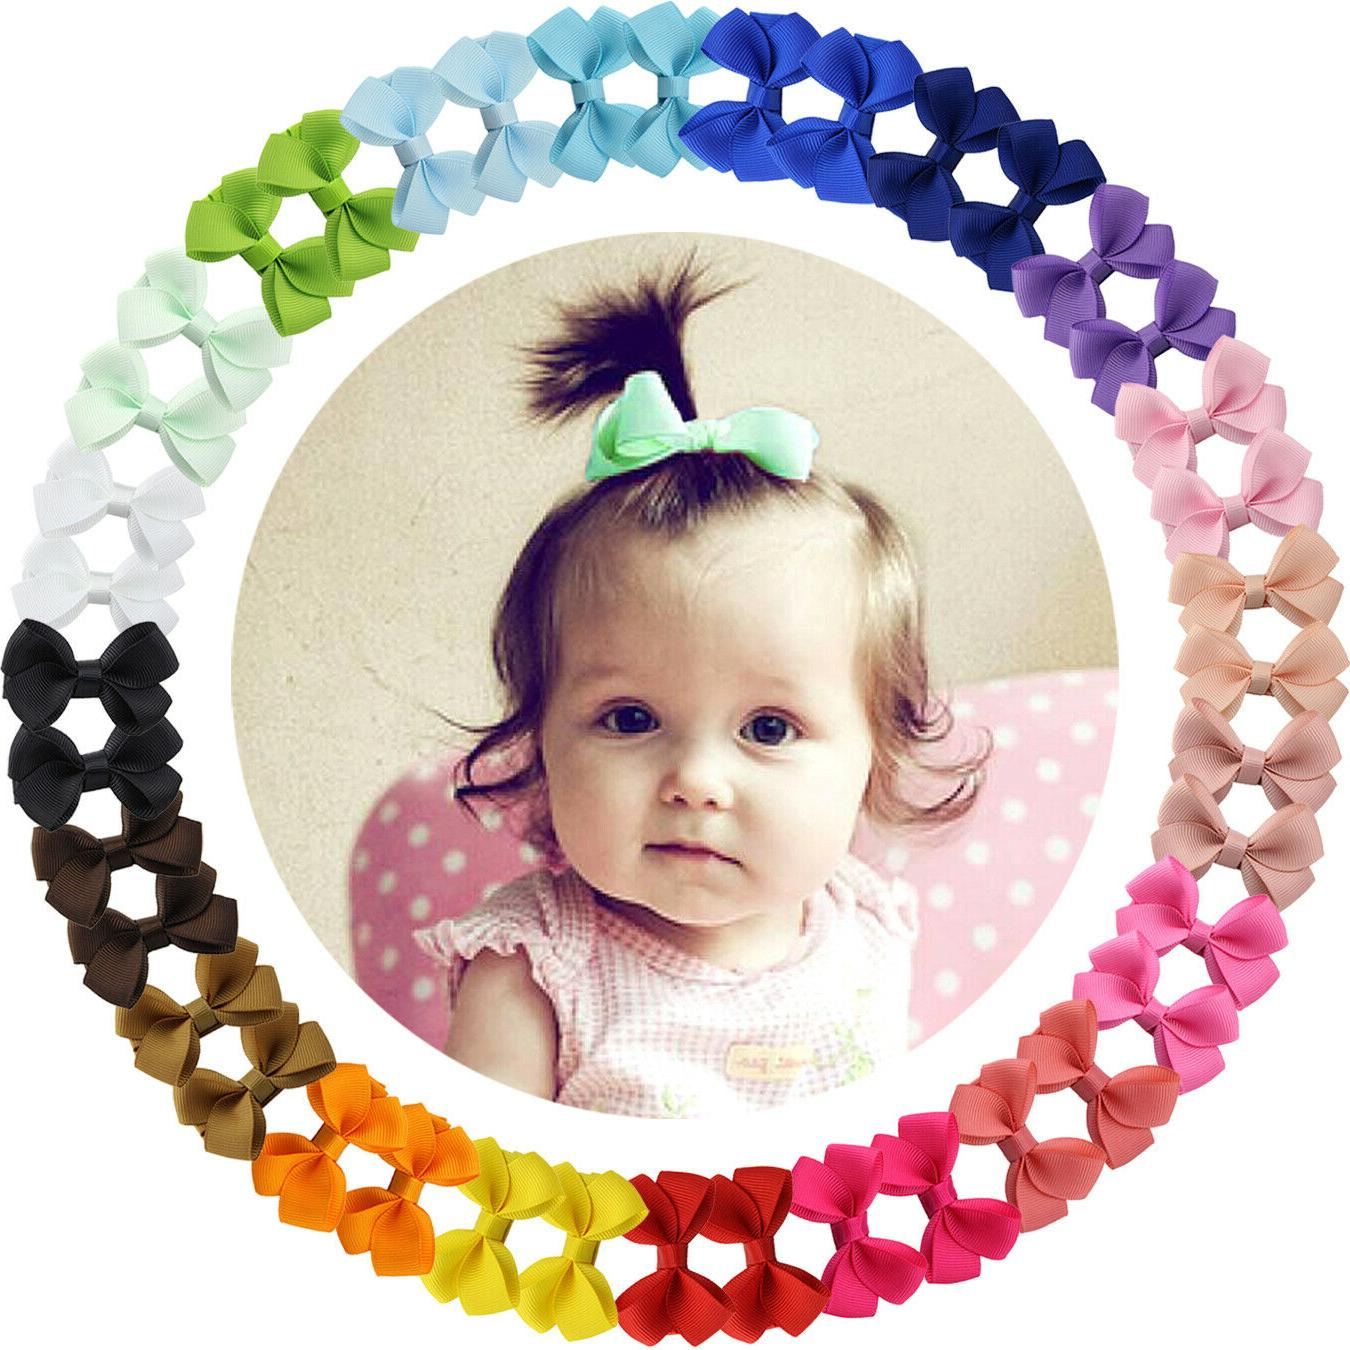 40pcs boutique 2 inch hair bows fully